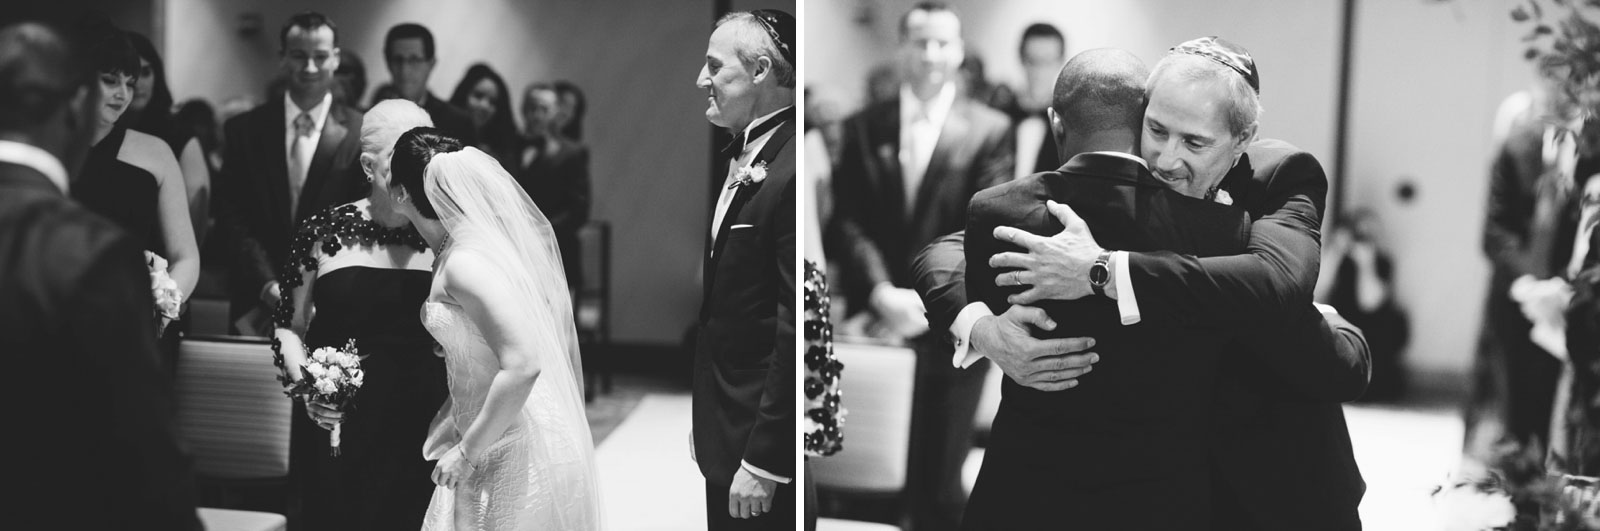 black and white shots of bride's parents giving her away at multicultural wedding ceremony